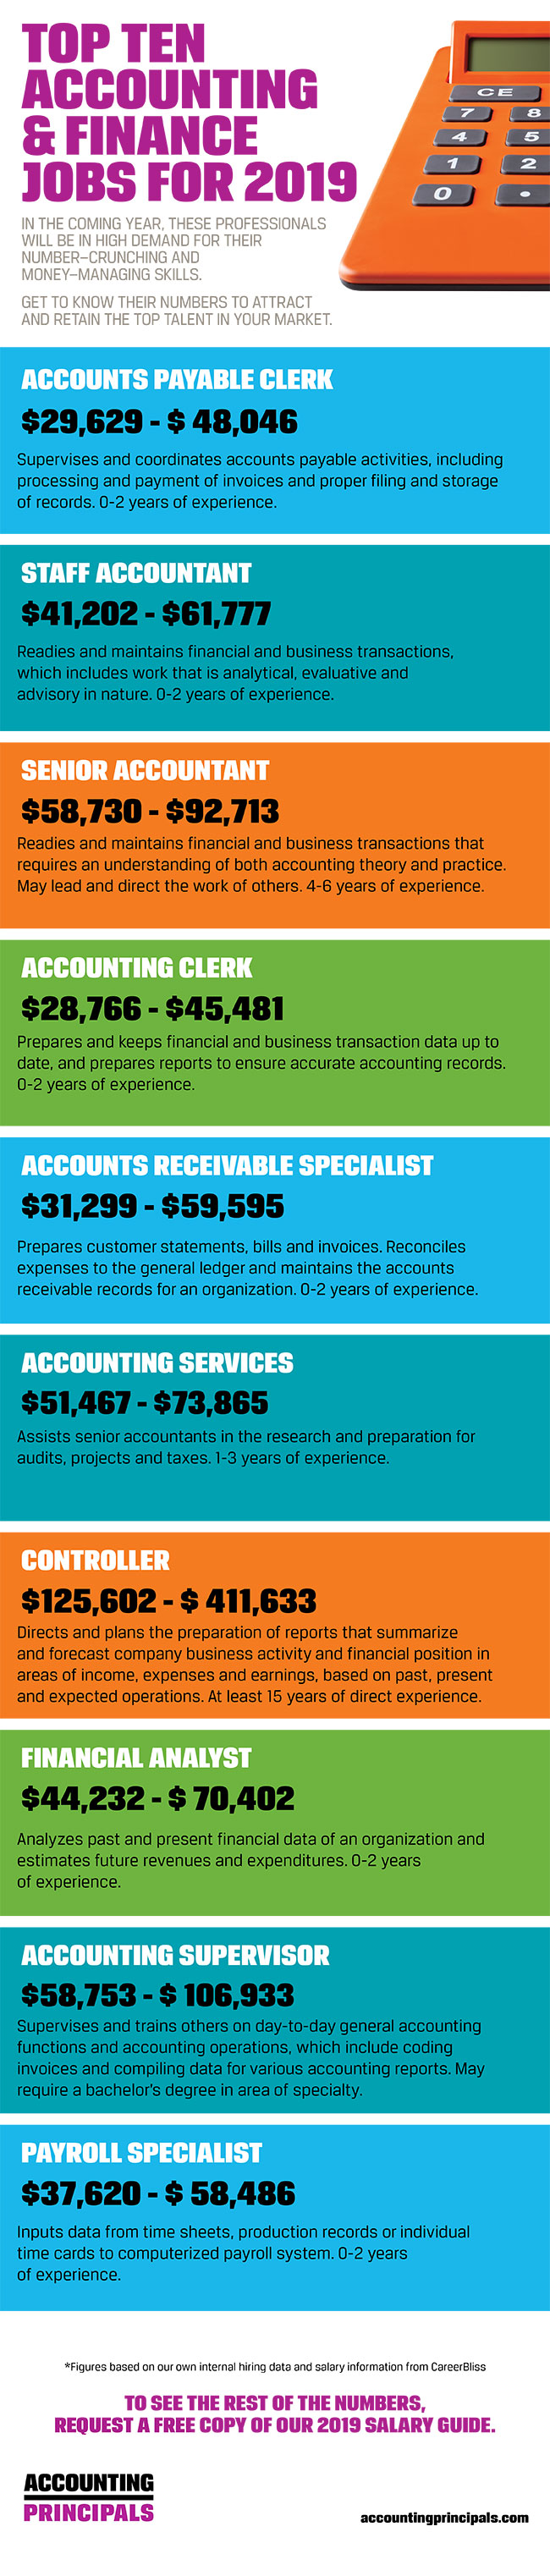 Infographic of top ten accounting and finance jobs for 2019